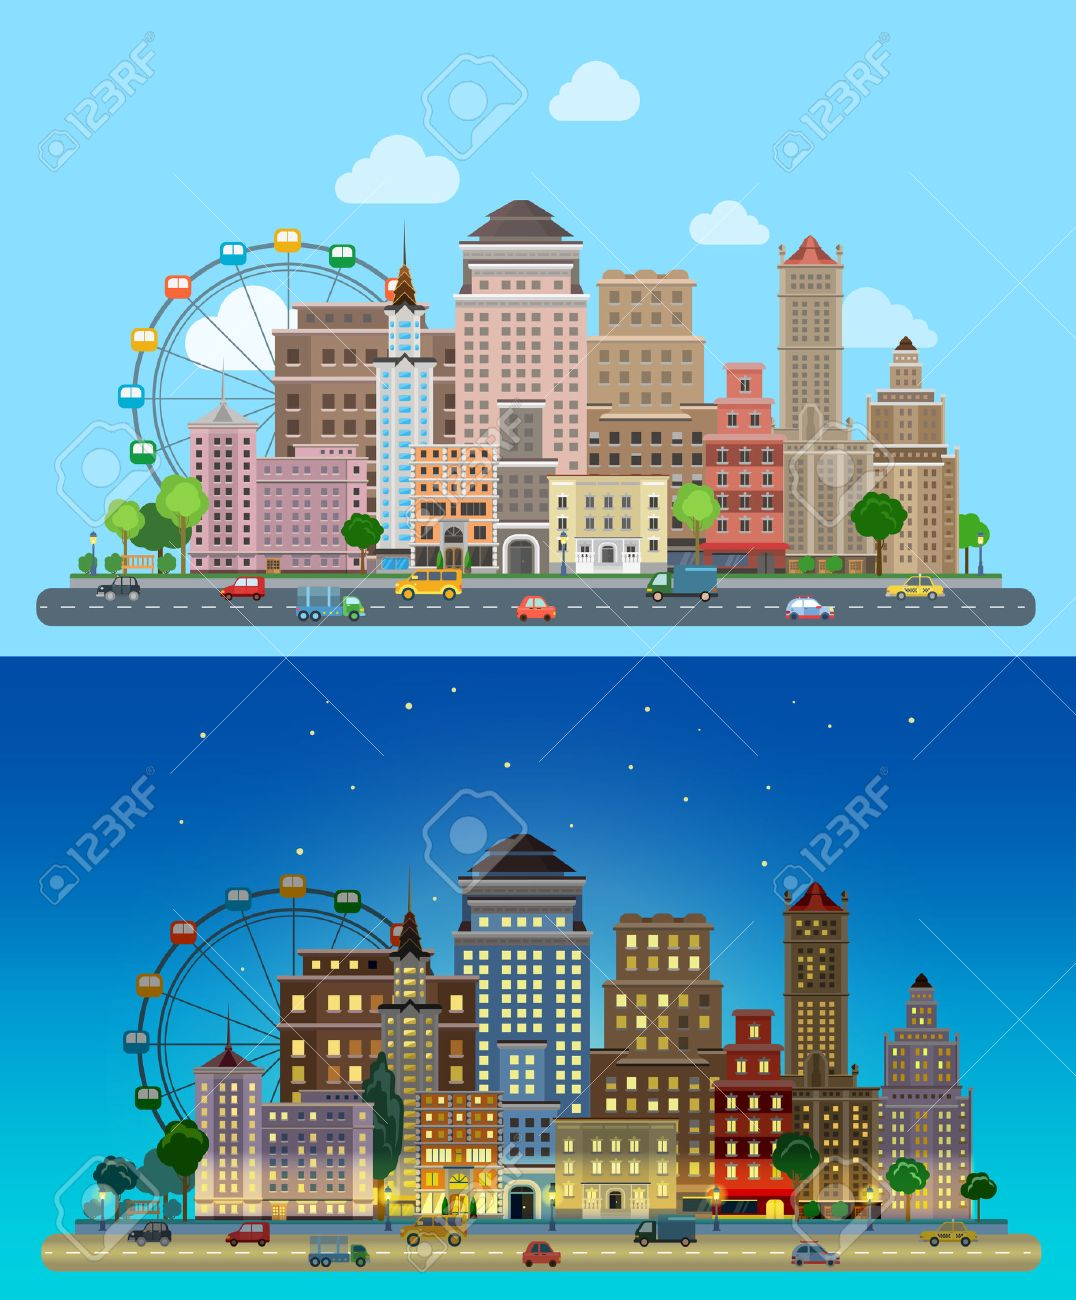 4df3a4fac8 Flat cartoon carousel historic skyscrapers city set day and night. Road  highway avenue transport street